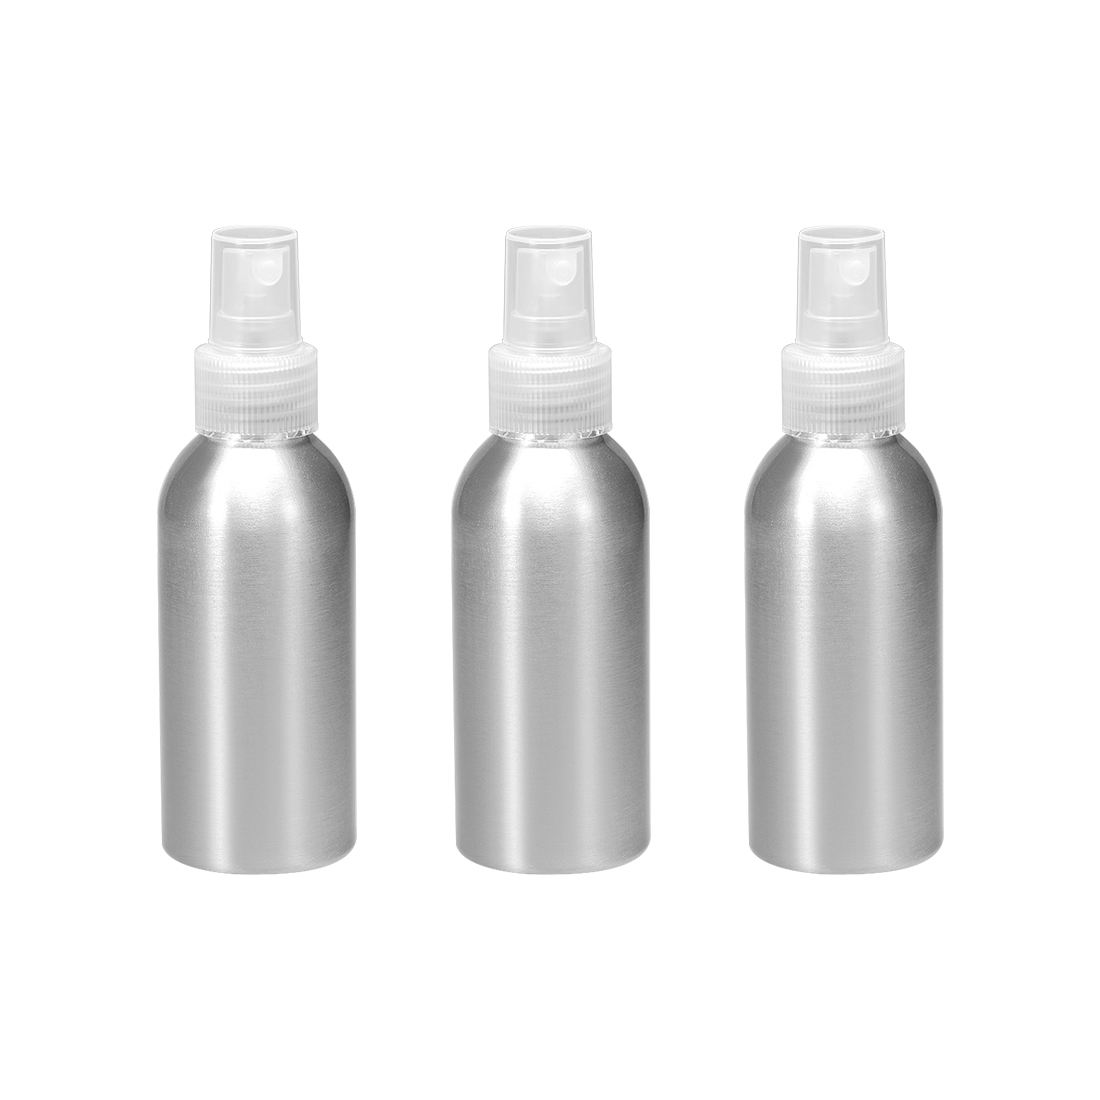 3pcs 3oz/100ml Aluminium Spray Bottle with Clear Sprayer Refillable Container